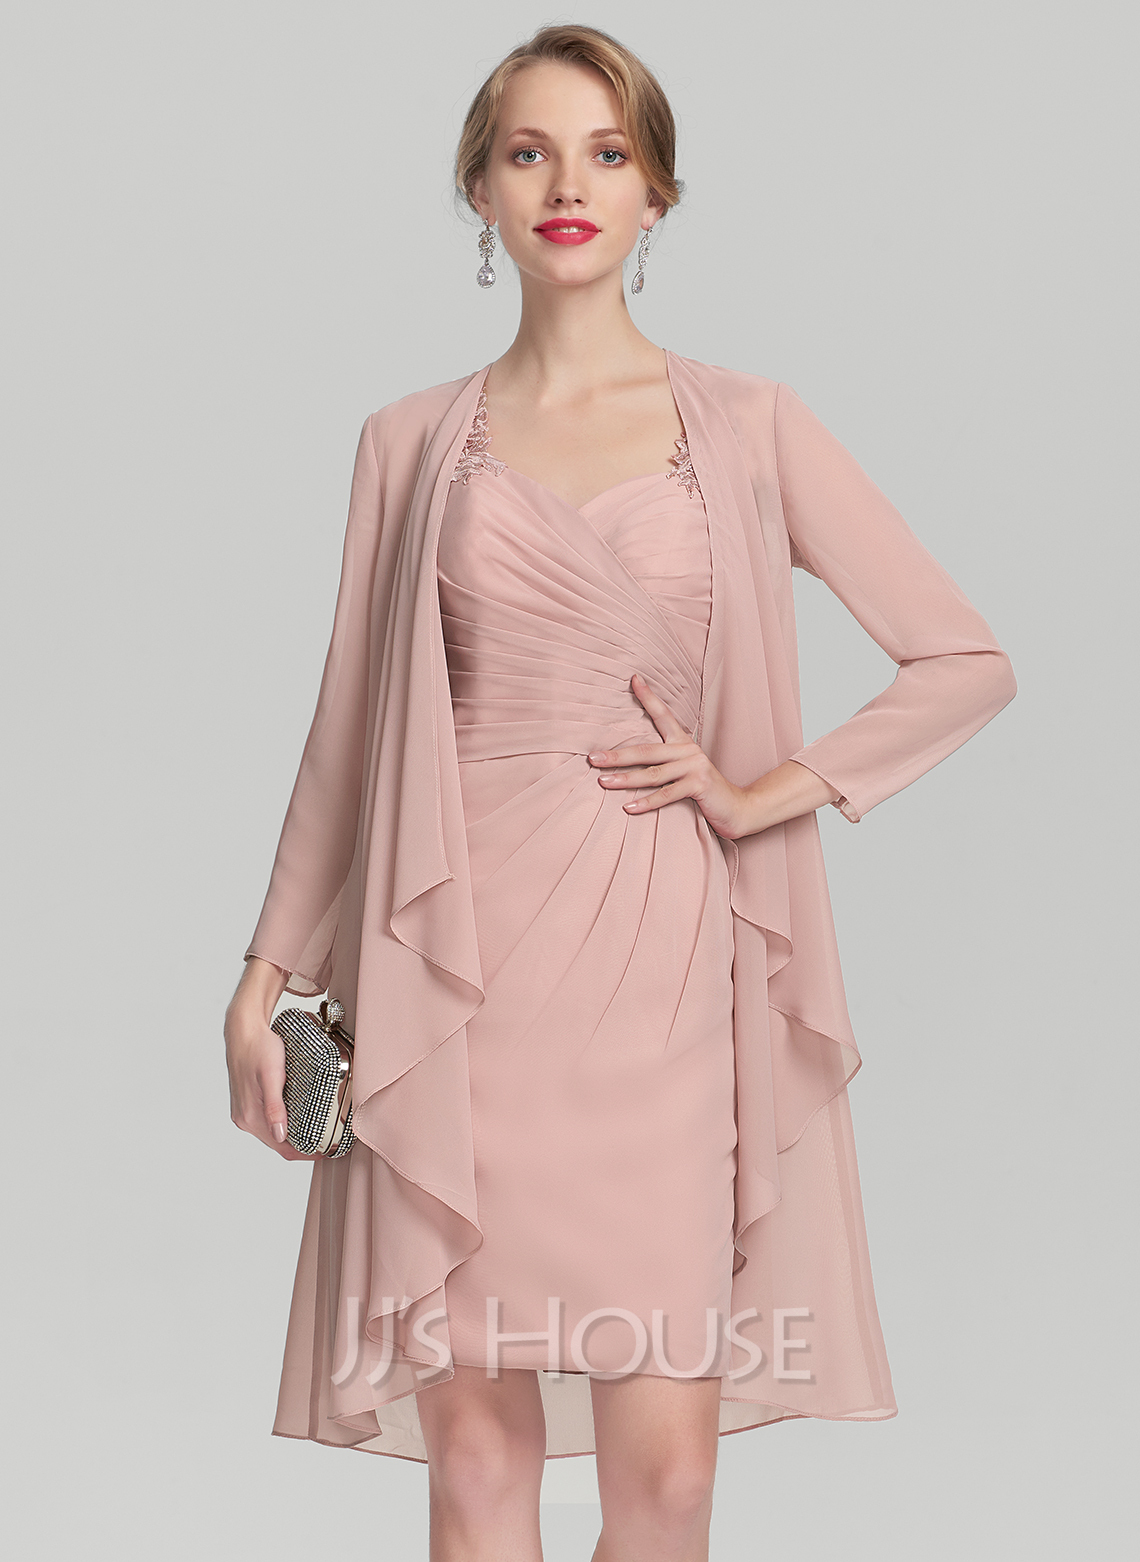 Sheath/Column Sweetheart Knee-Length Chiffon Mother of the Bride Dress With Ruffle Lace